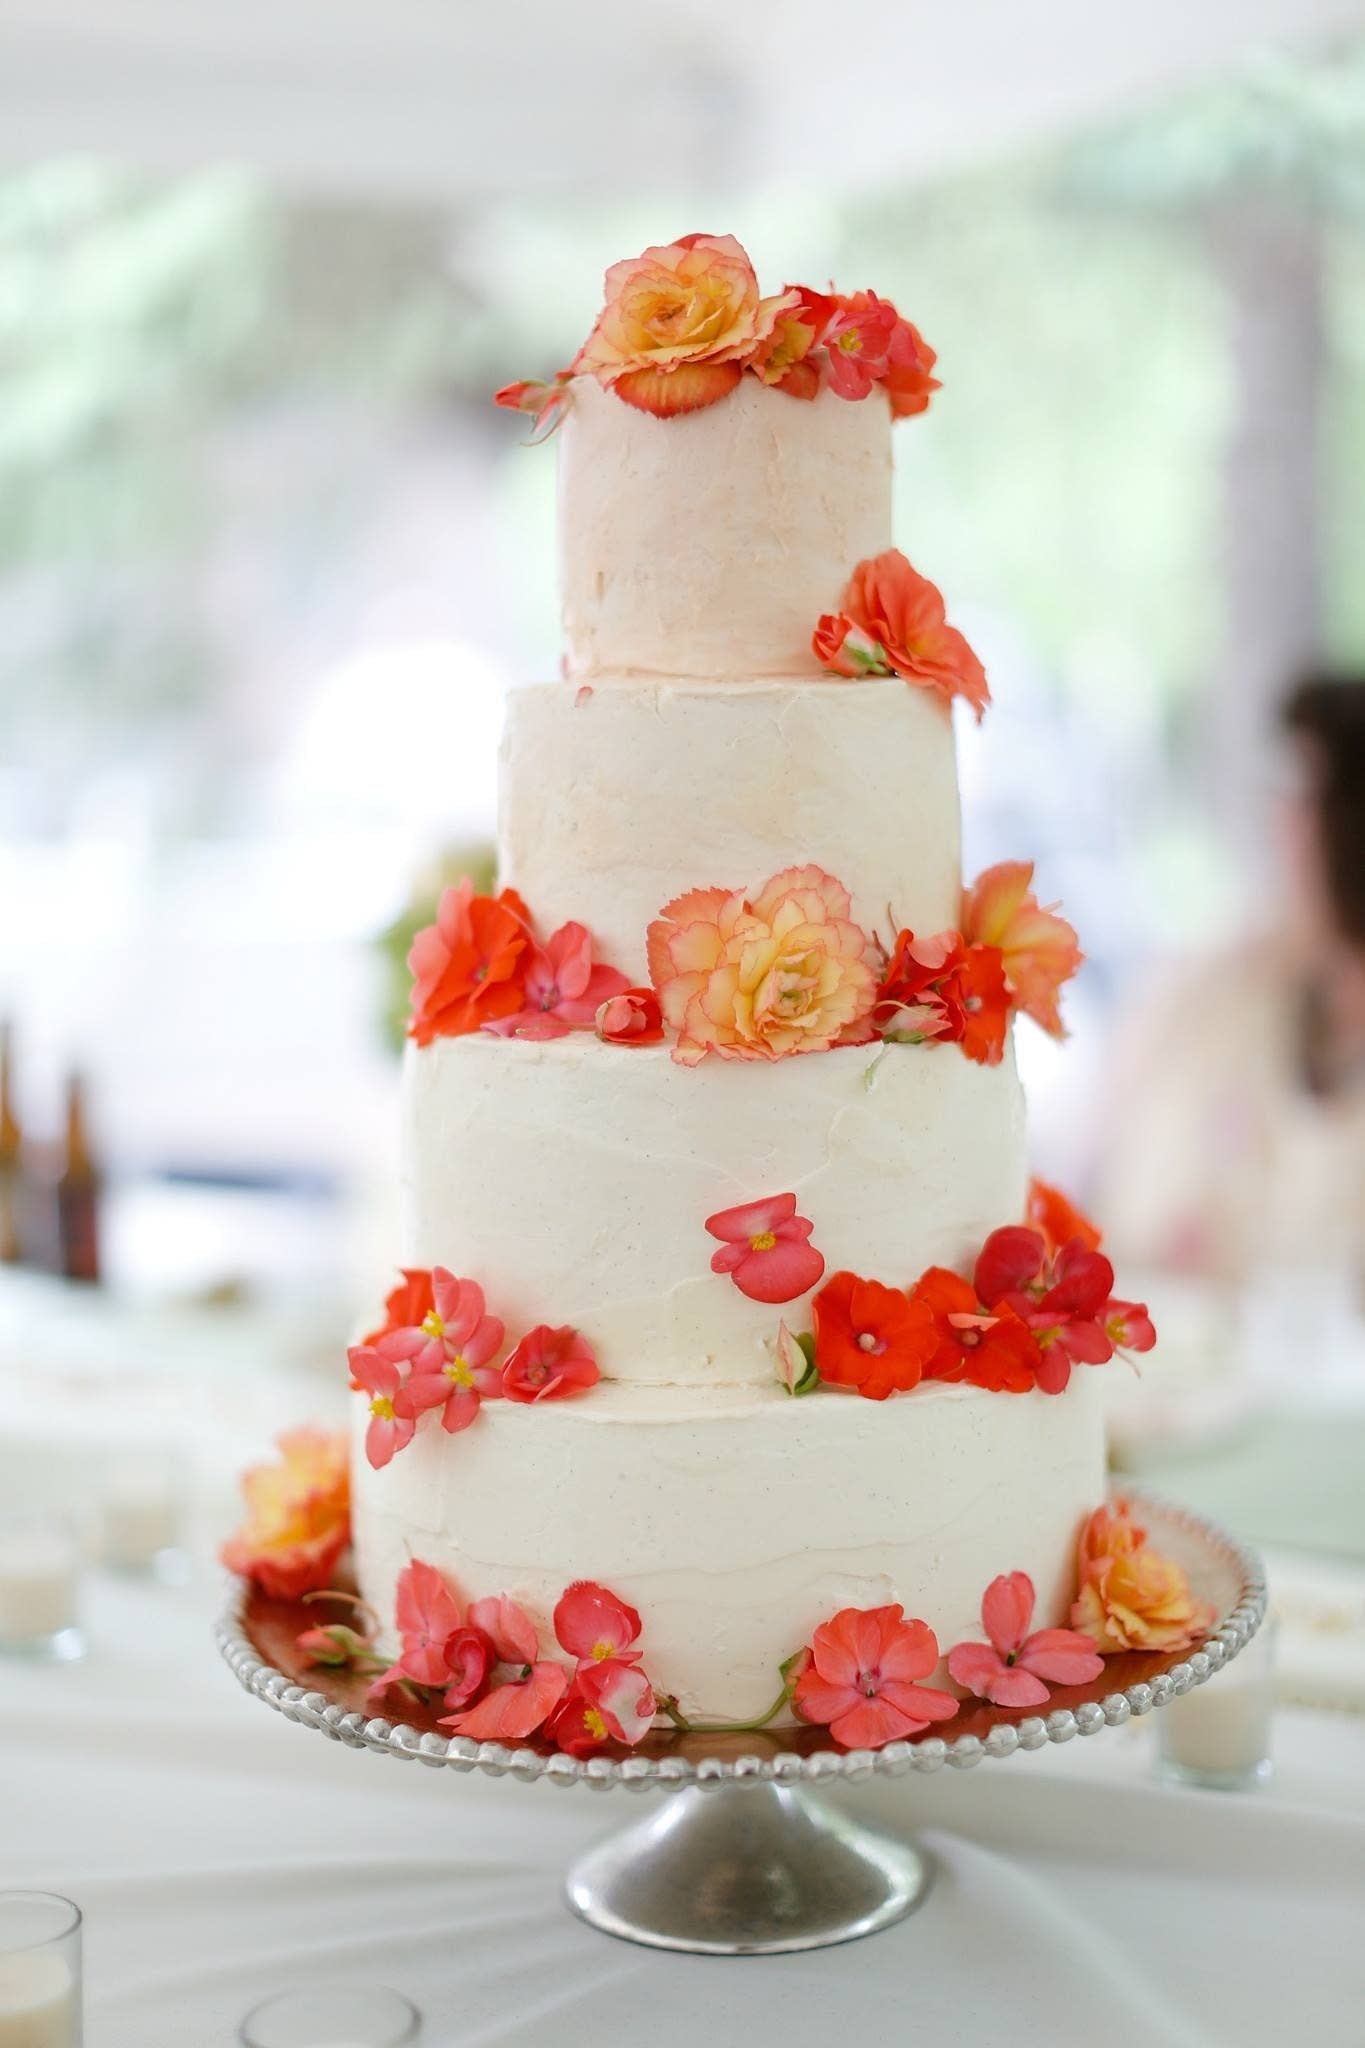 Appetites Making Wedding Cakes With Love Mpr News